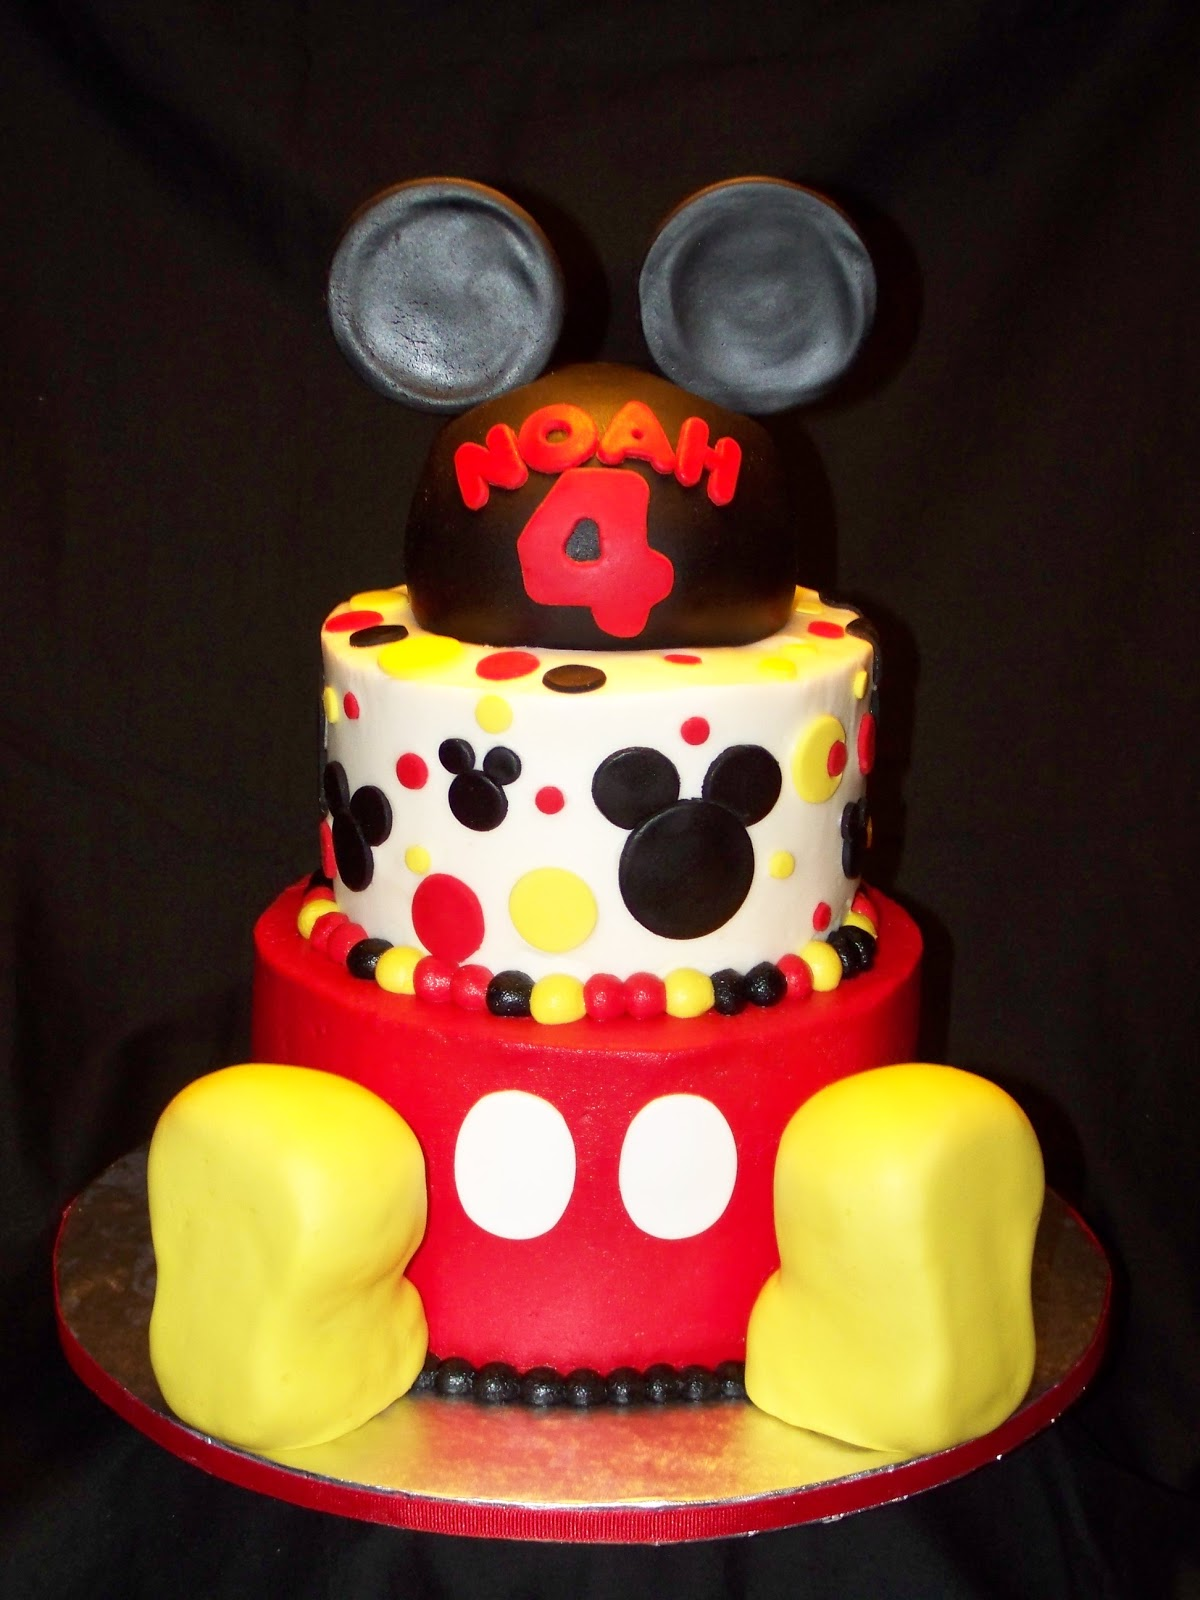 Cake Images Of Mickey Mouse : Cakes by Kristen H.: January 2012